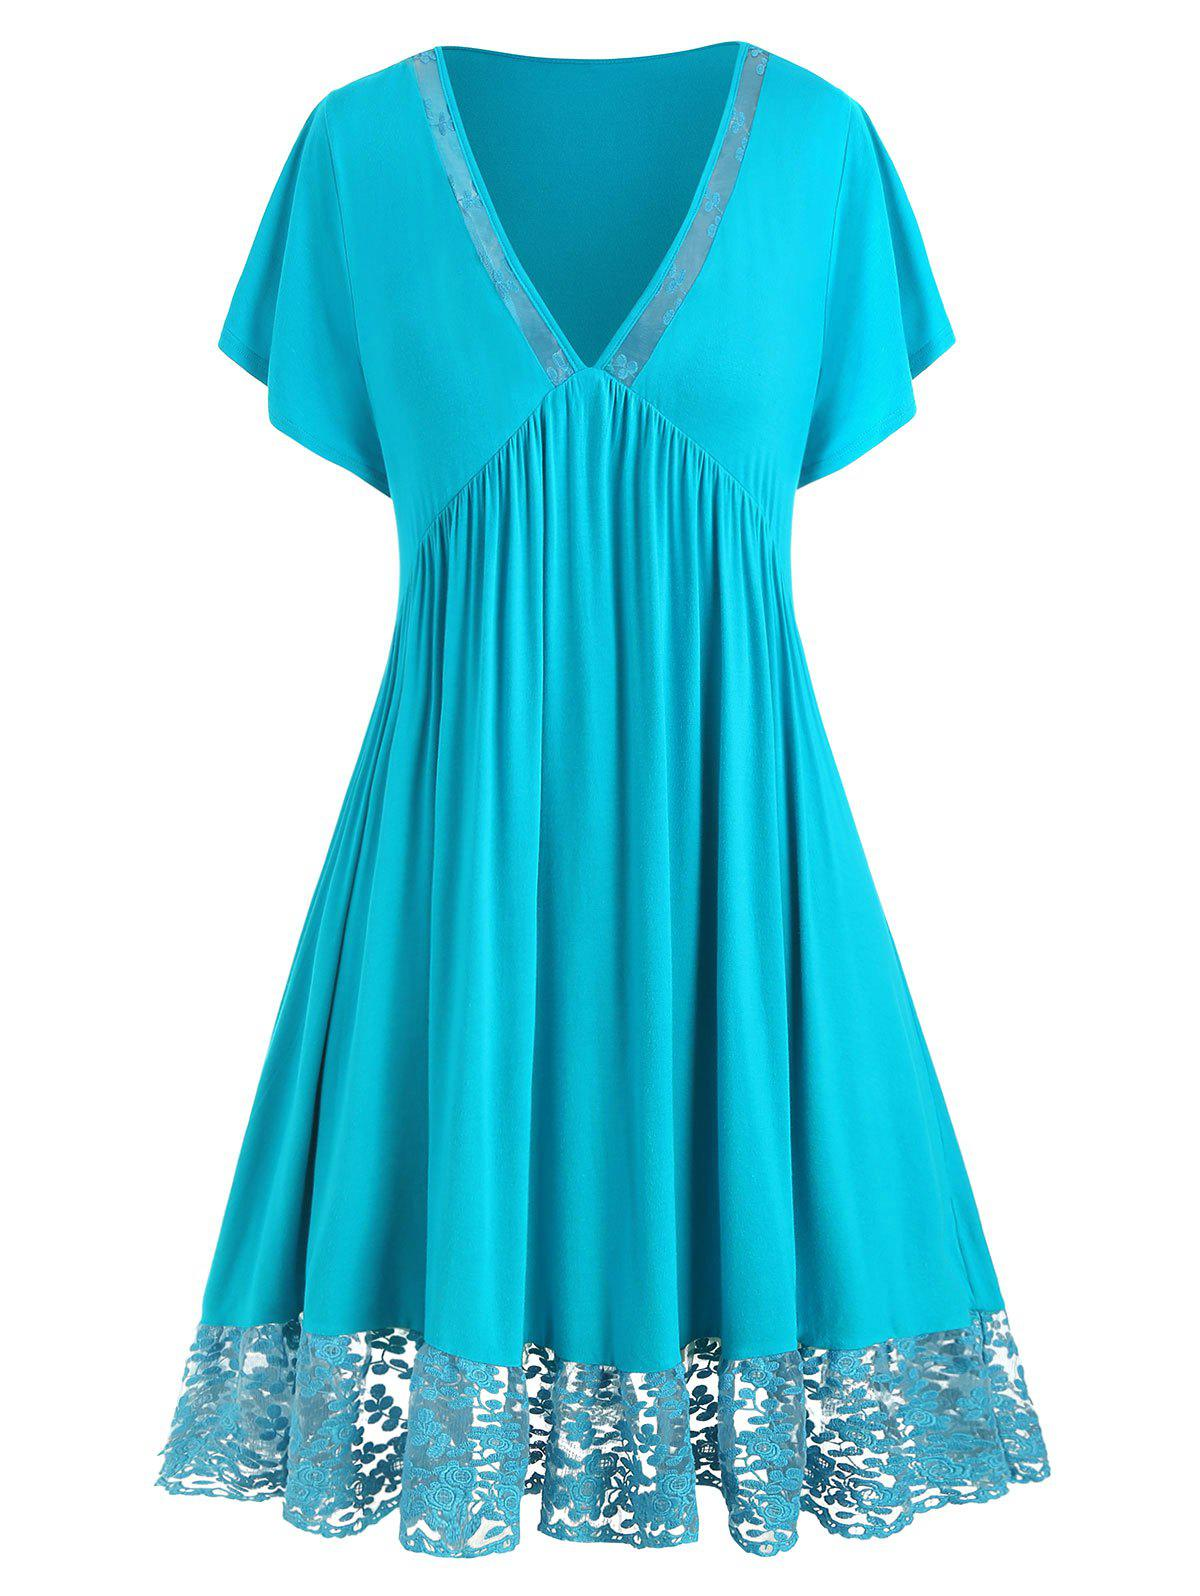 Plus Size Lace Insert Plunging Neck Solid Dress - TURQUOISE 1X